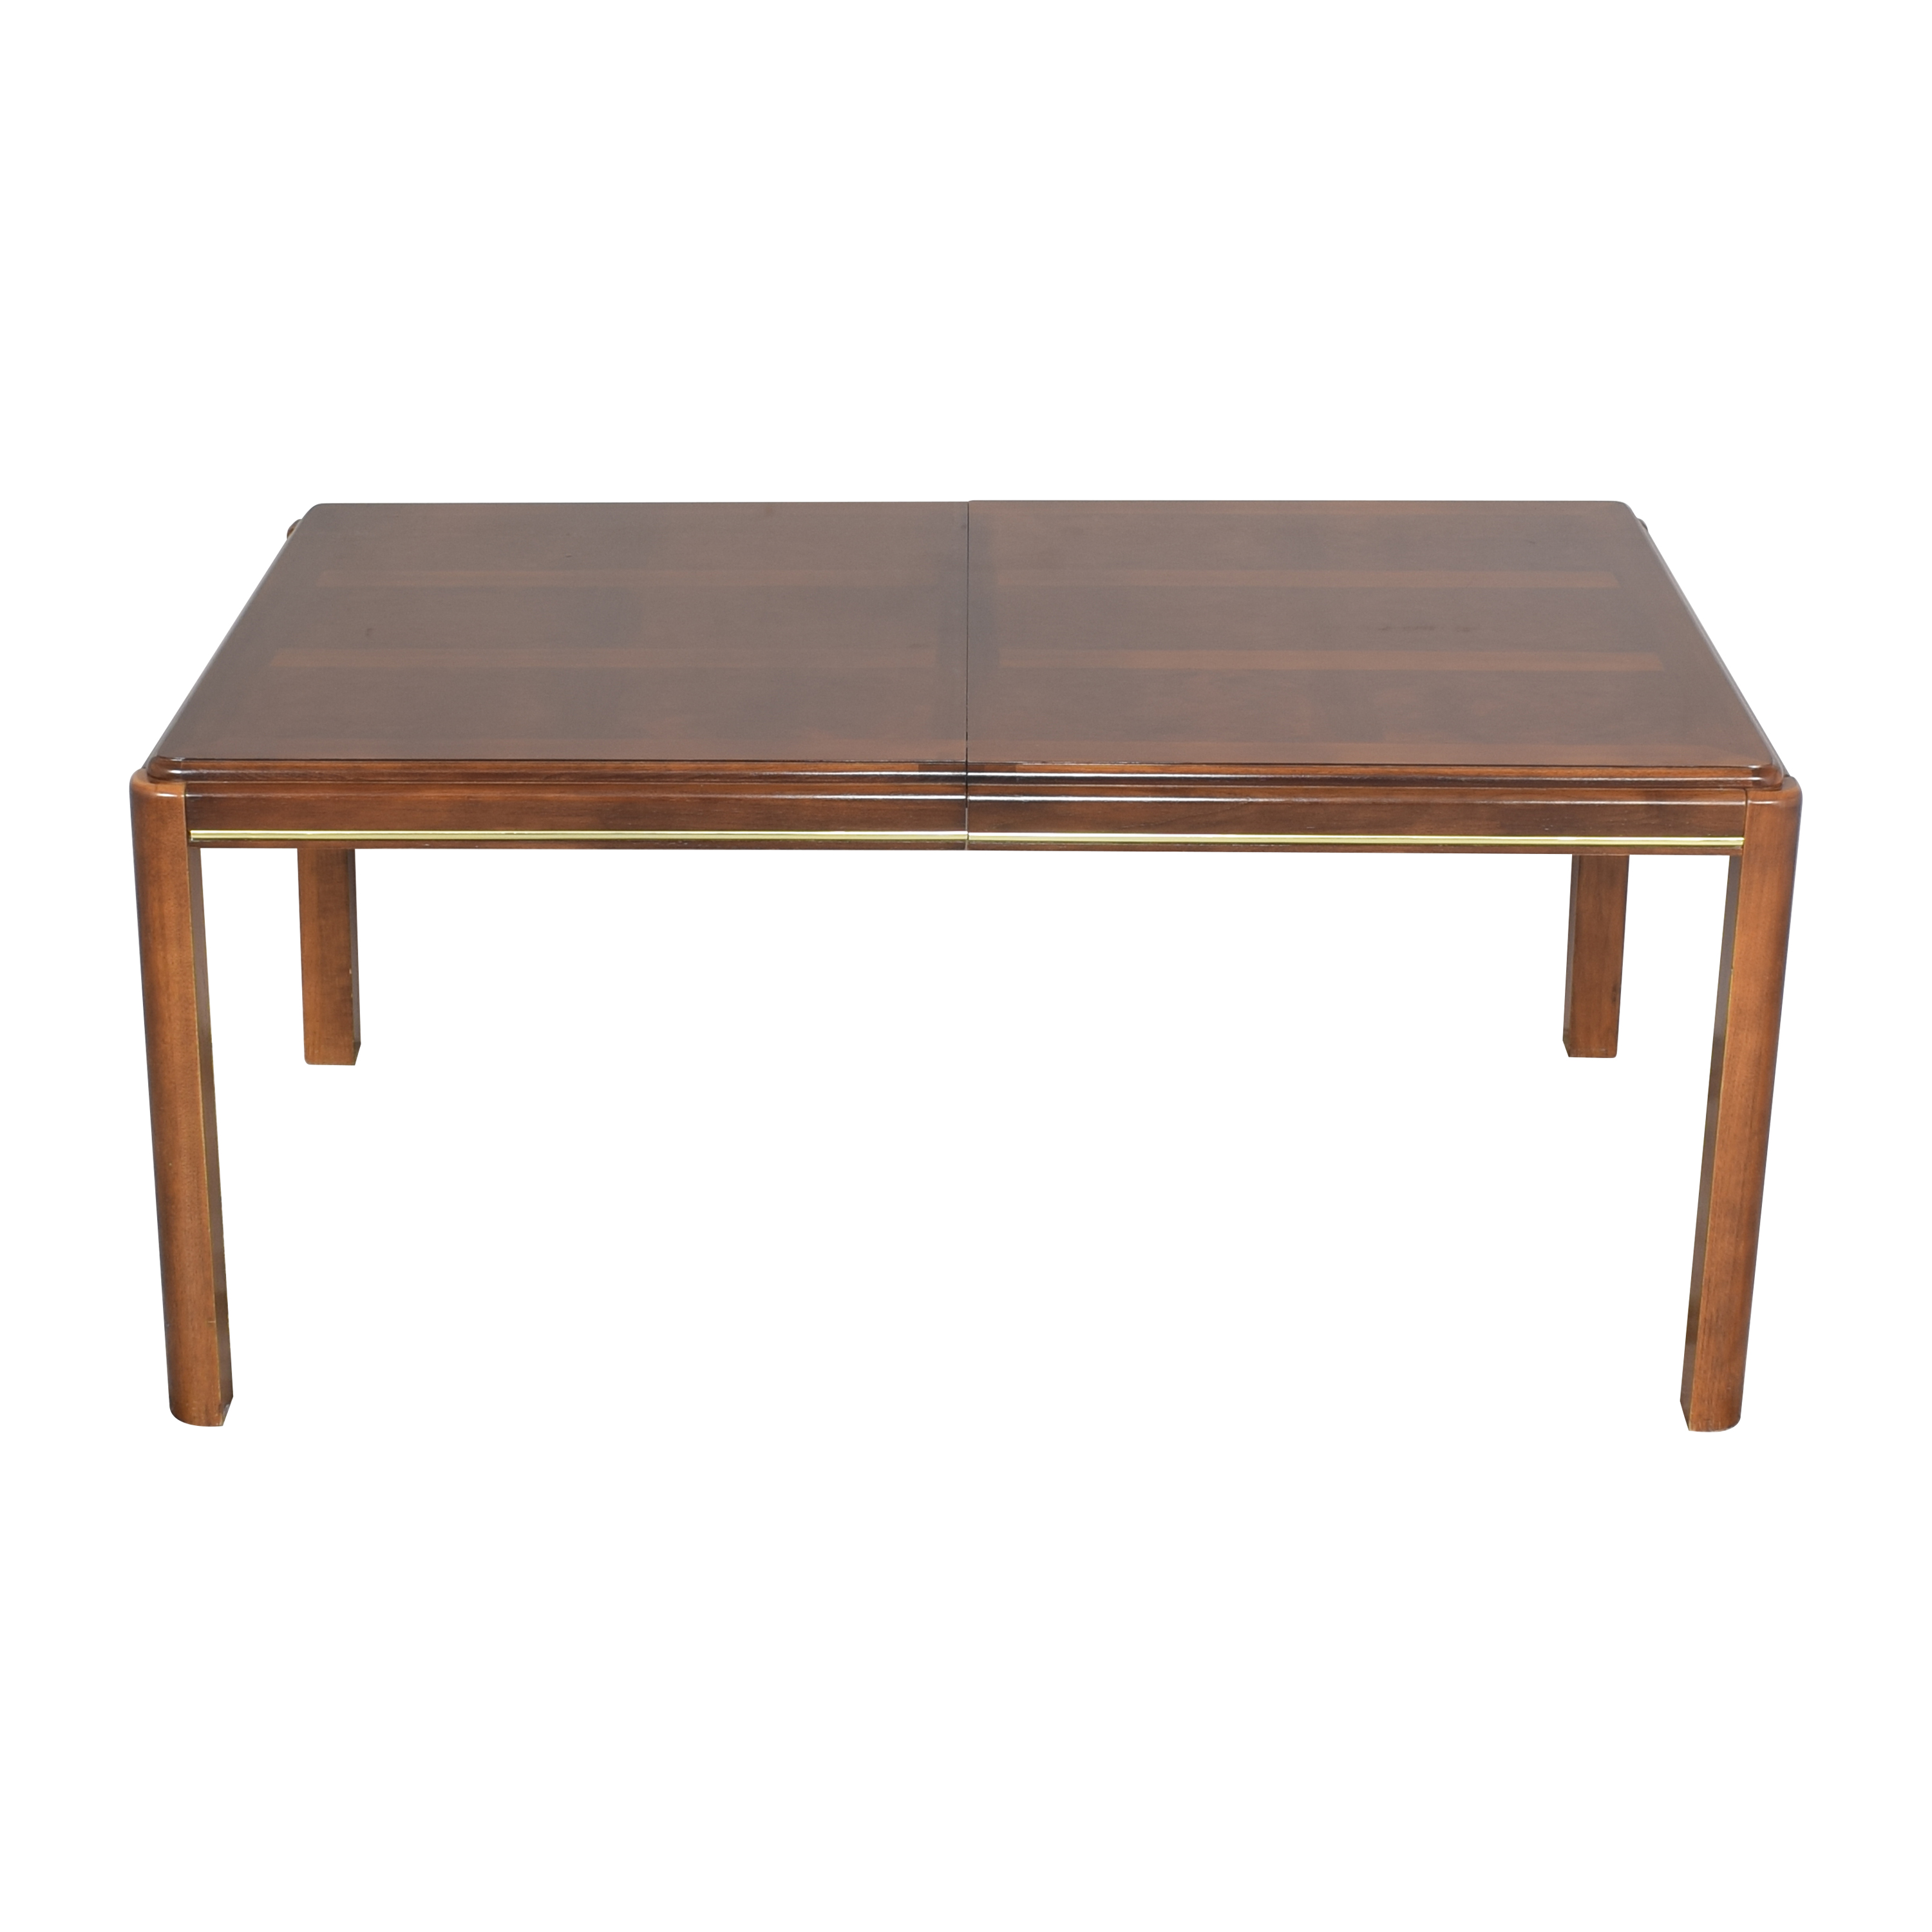 Thomasville Thomasville Founders Collection Dining Table for sale